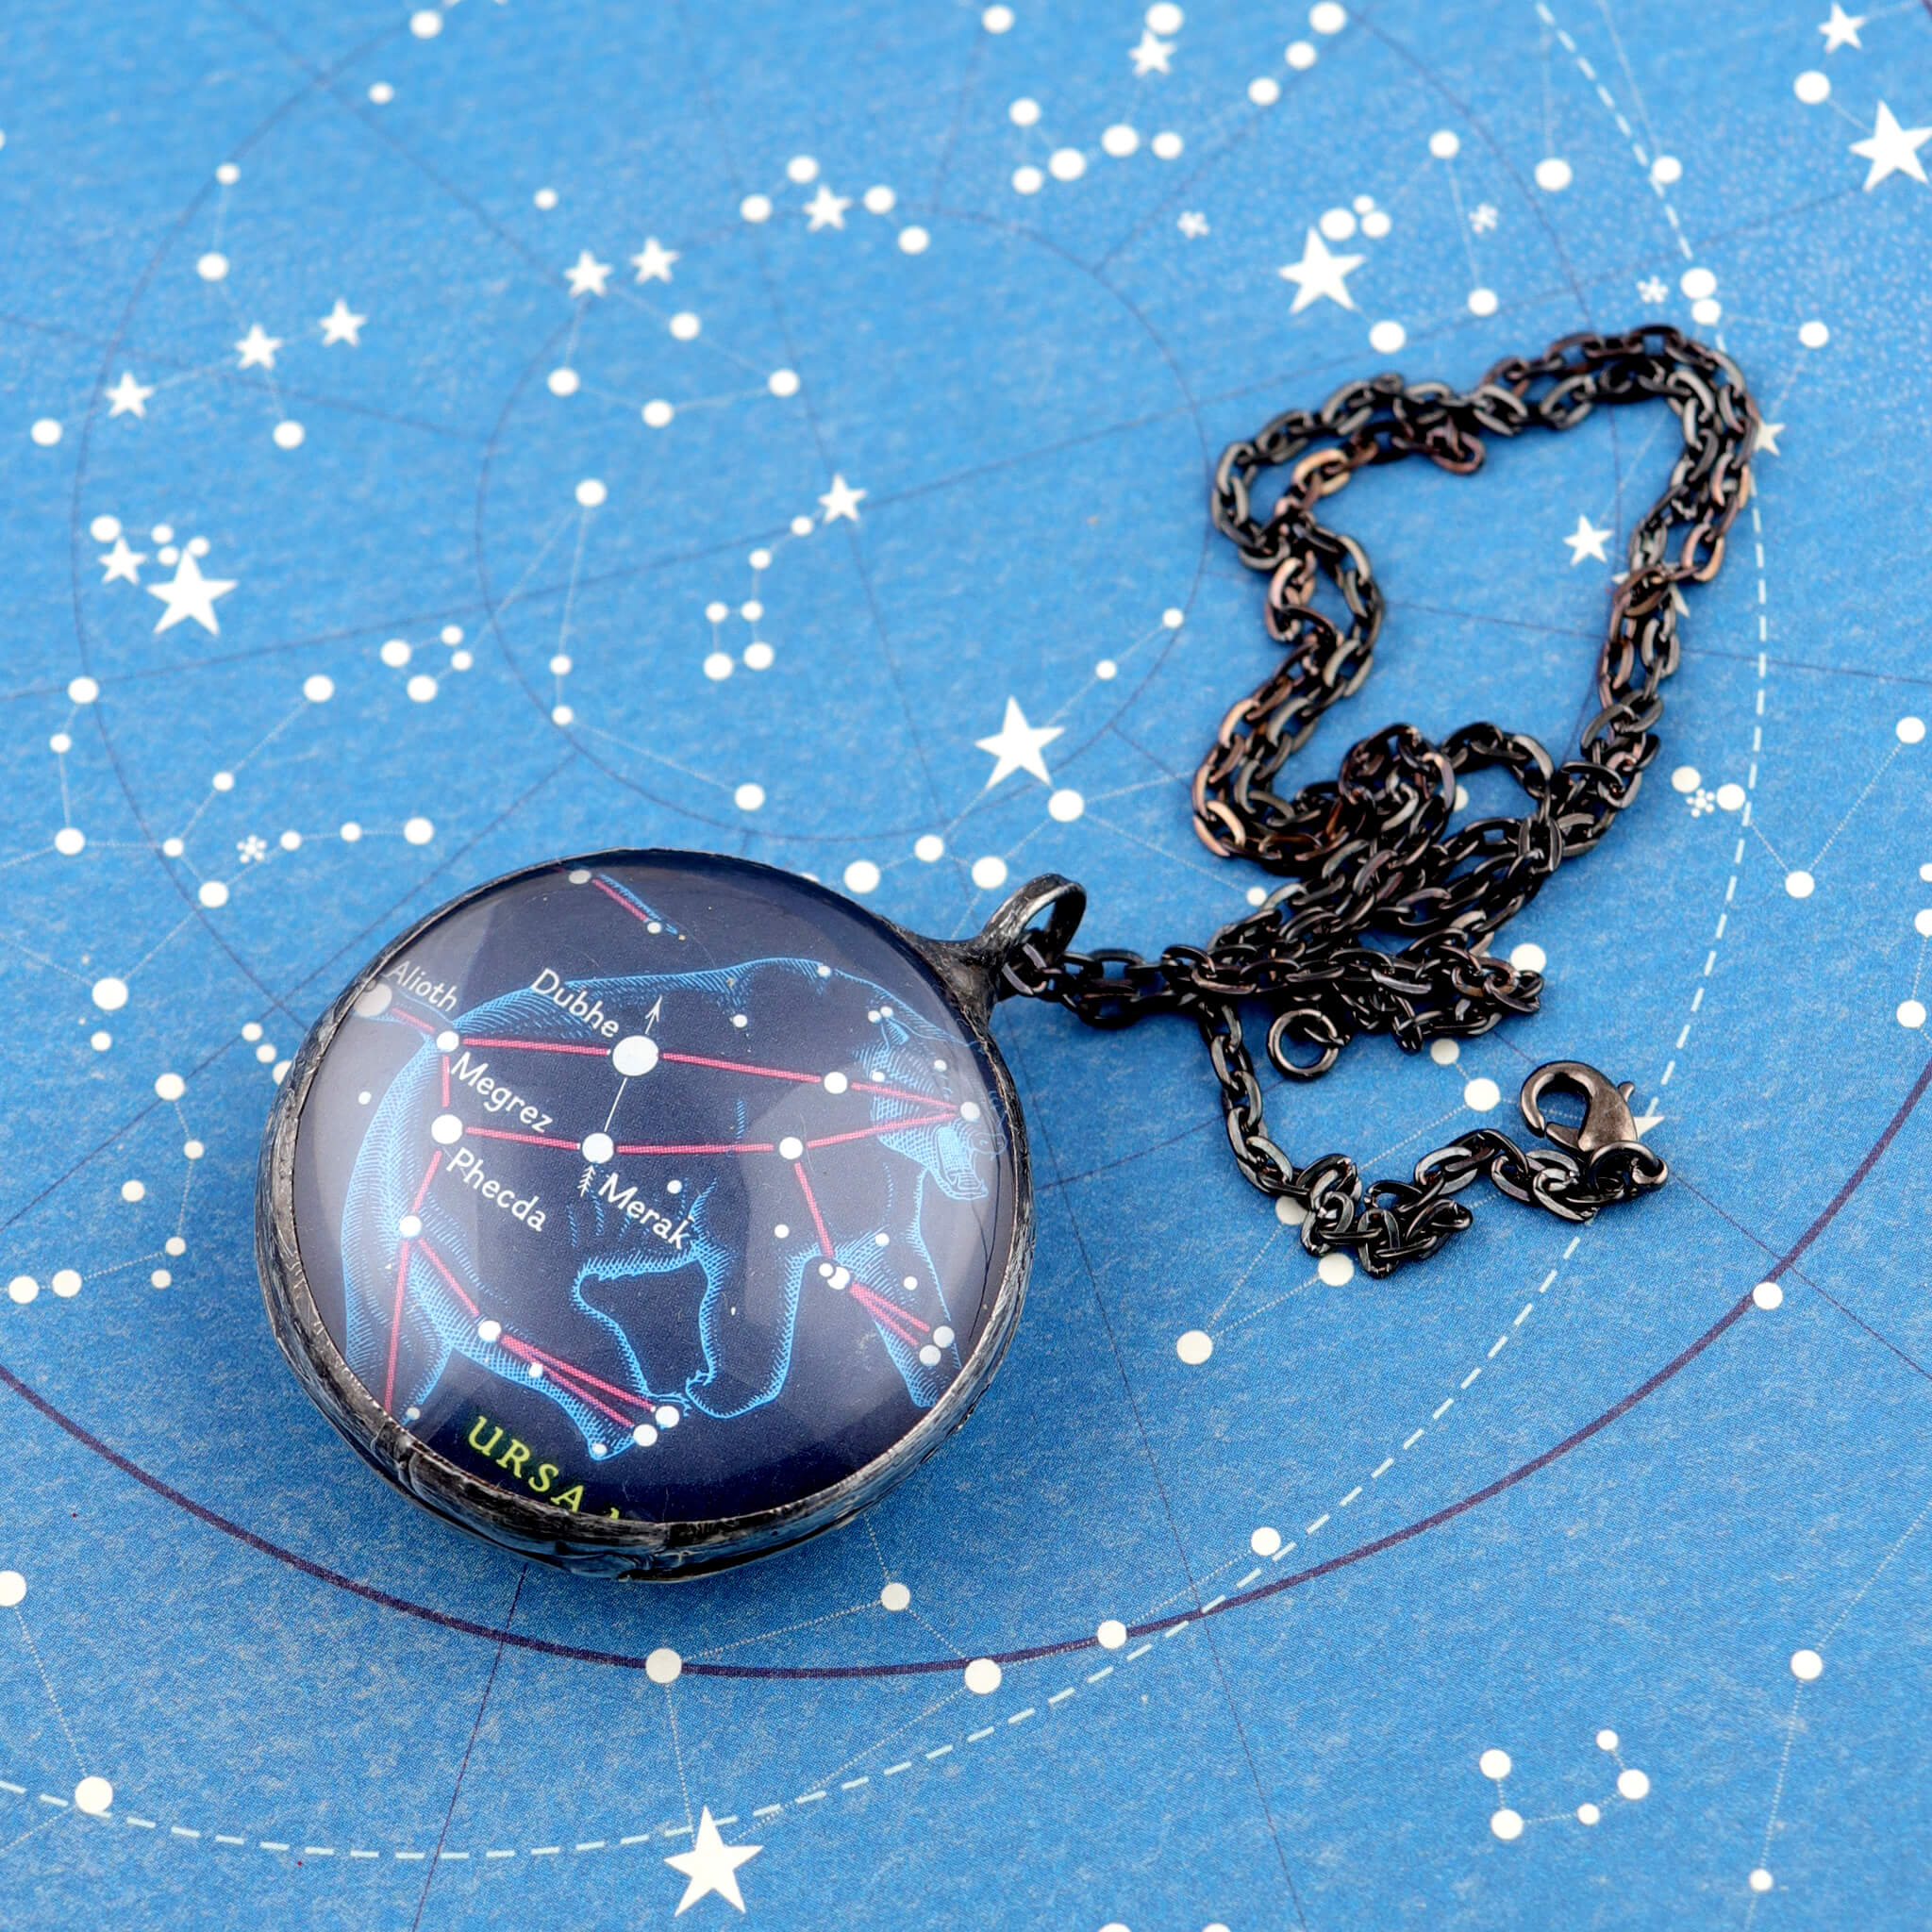 Ursa Major stained glass necklace lying on celestial stationery